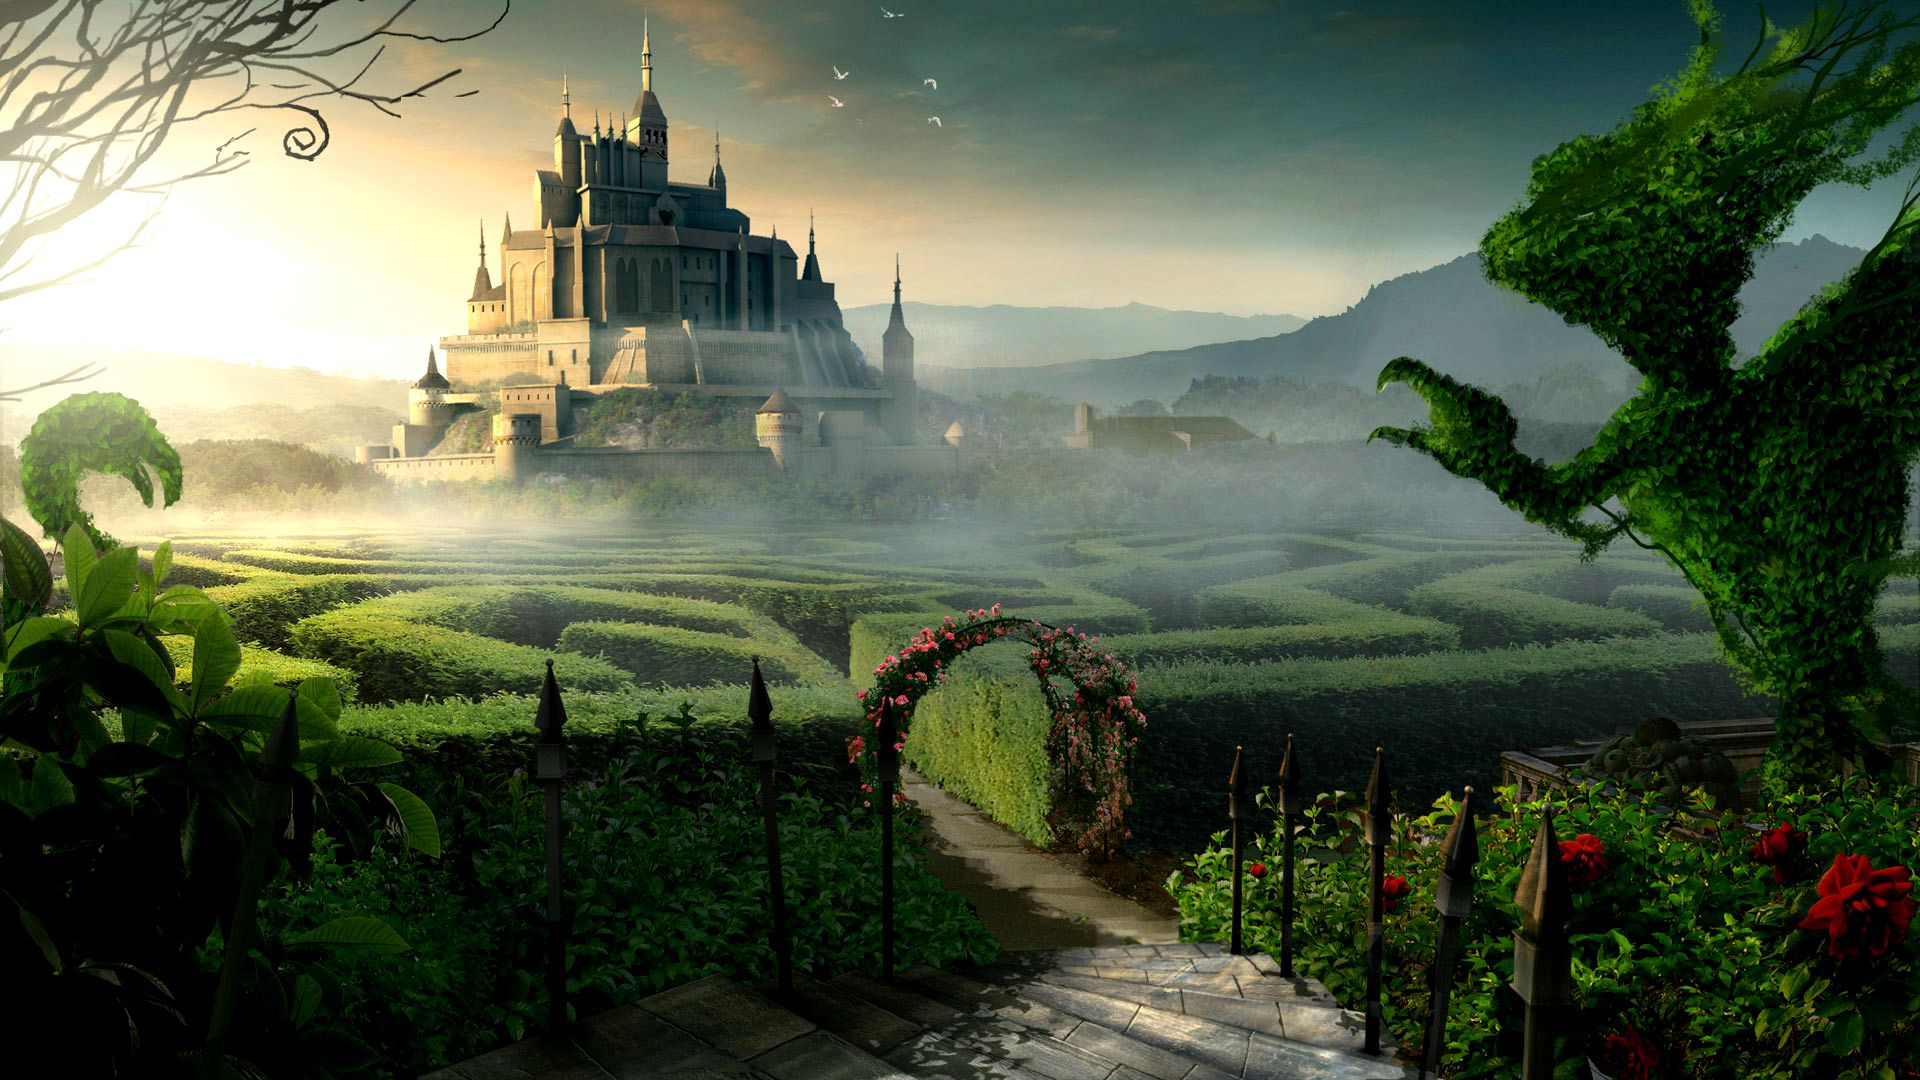 Fantasy World Wallpapers Hd Hd Wallpapers 4 Us Fantasy Castle